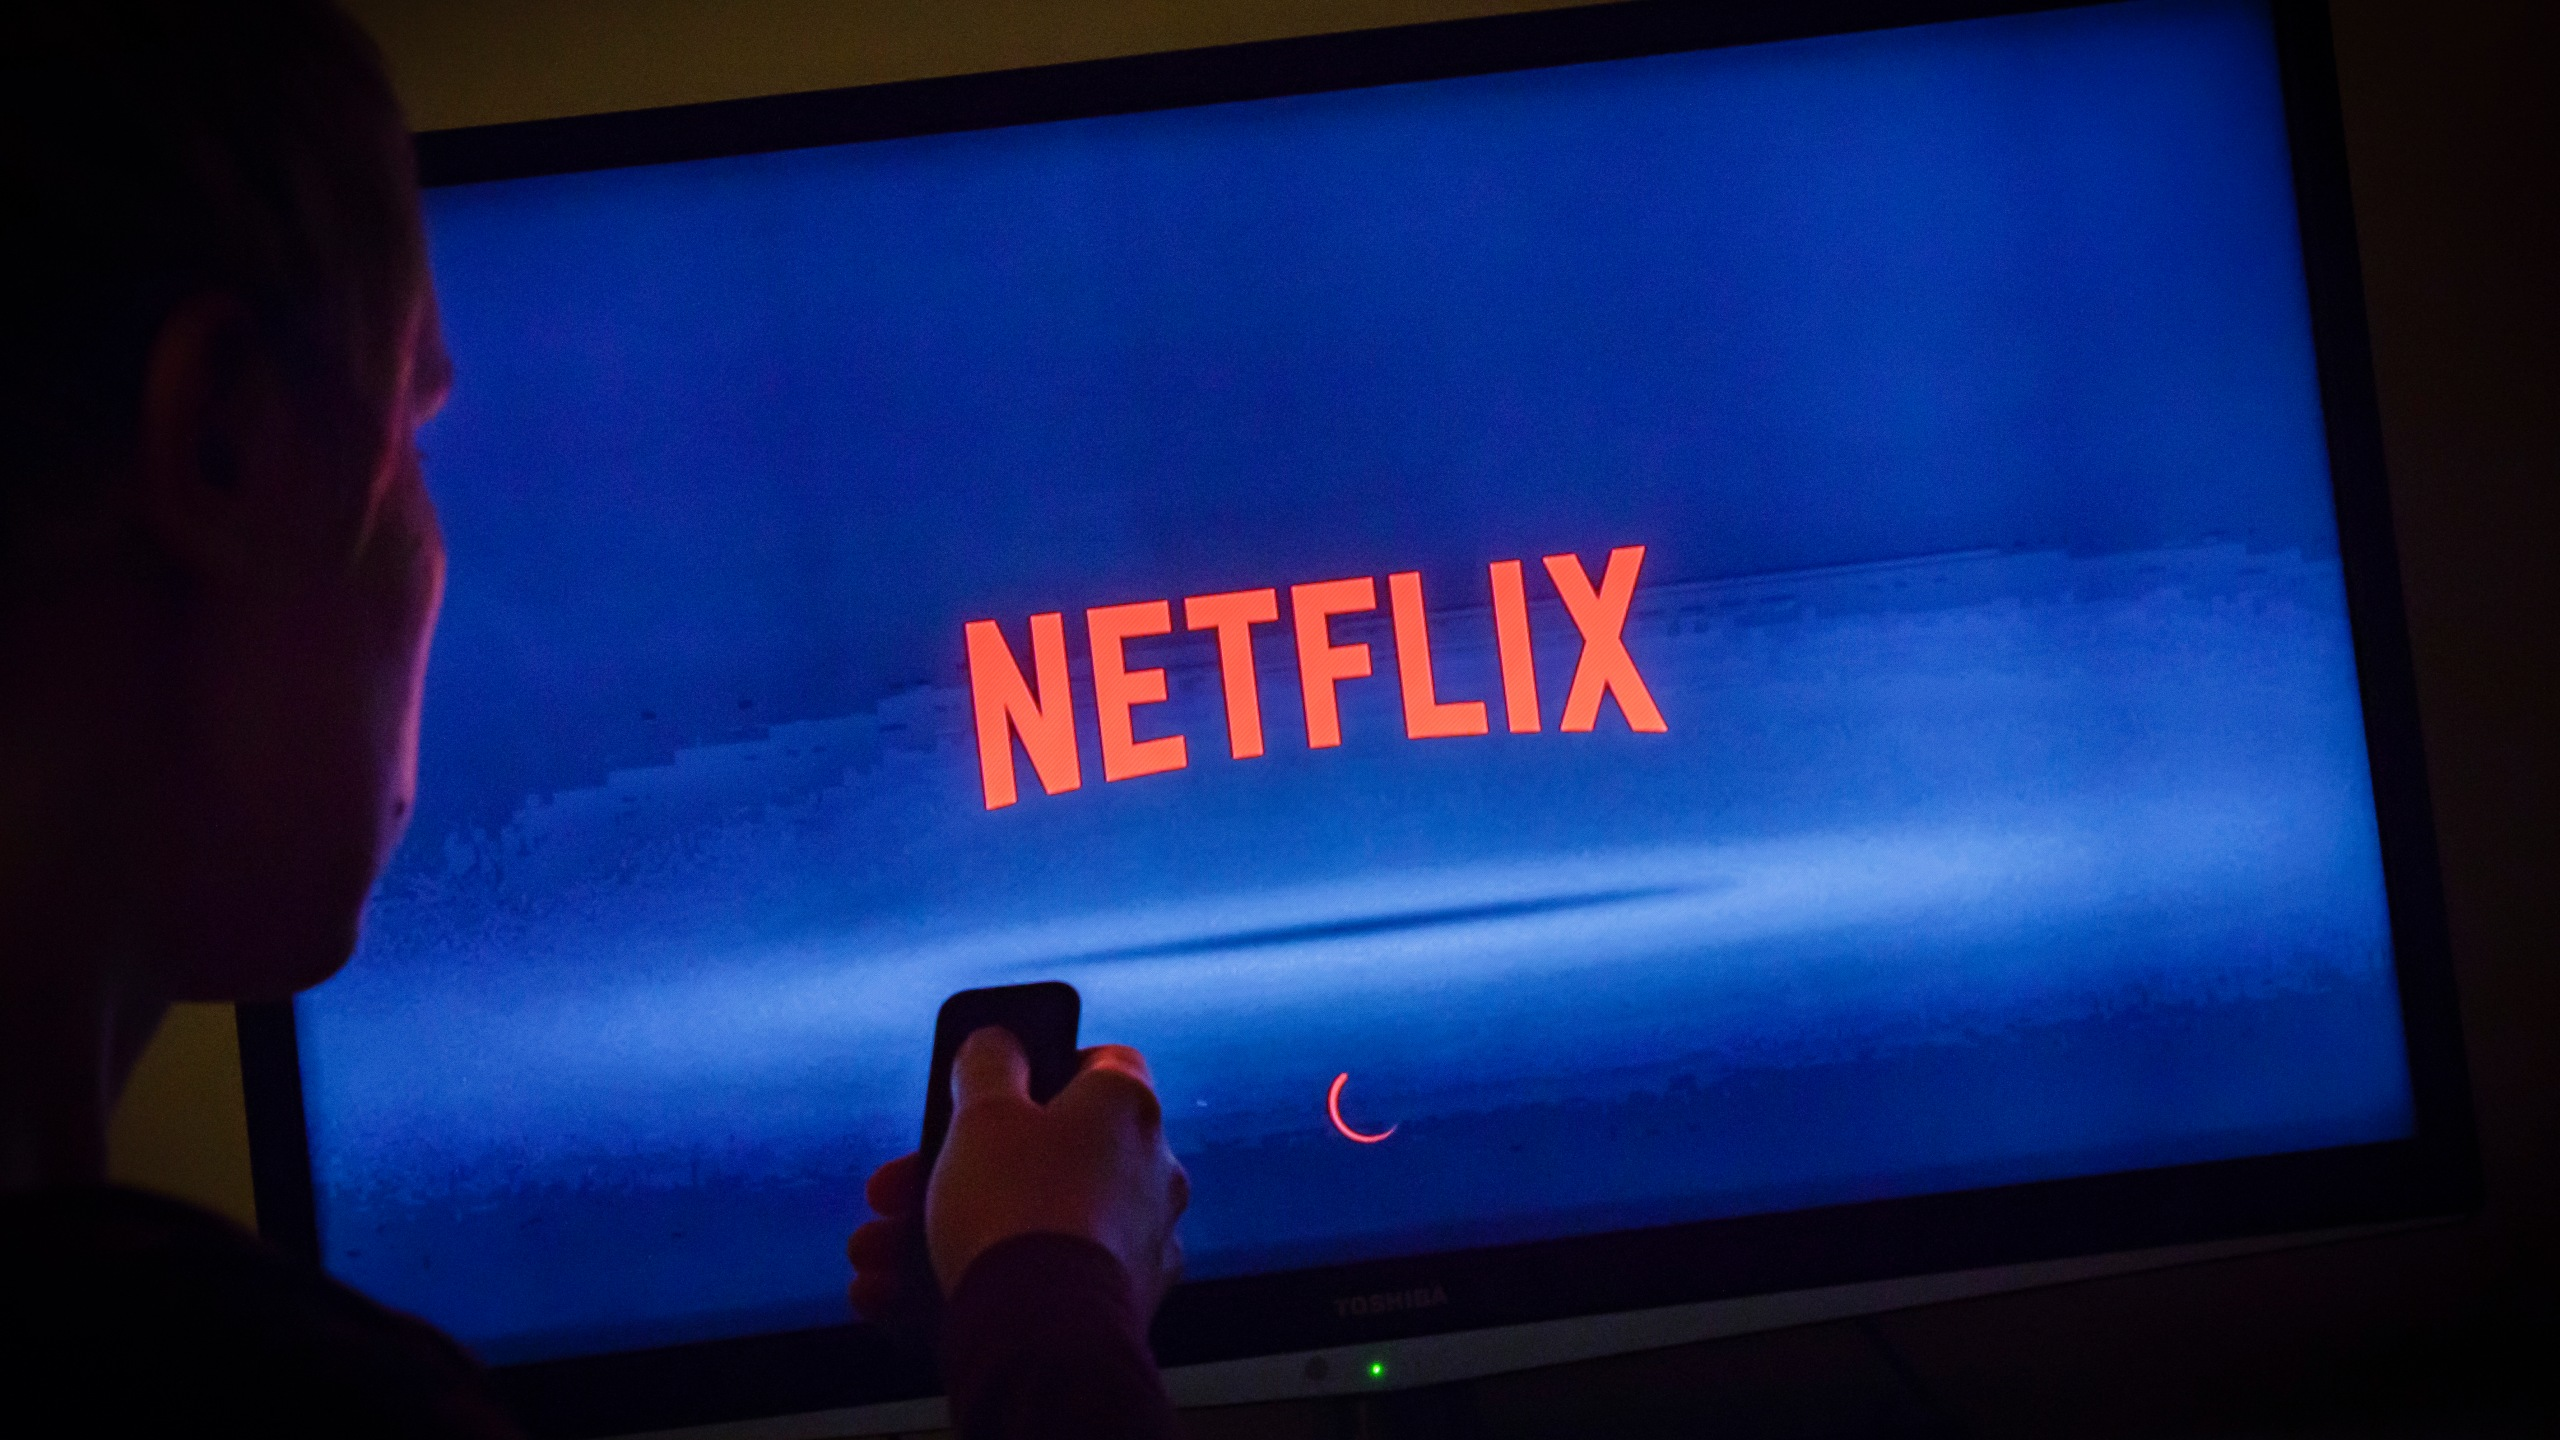 The Netflix logo can be seen on a TV on April 05, 2018 (Credit: Thomas Trutschel/Photothek via Getty Images)